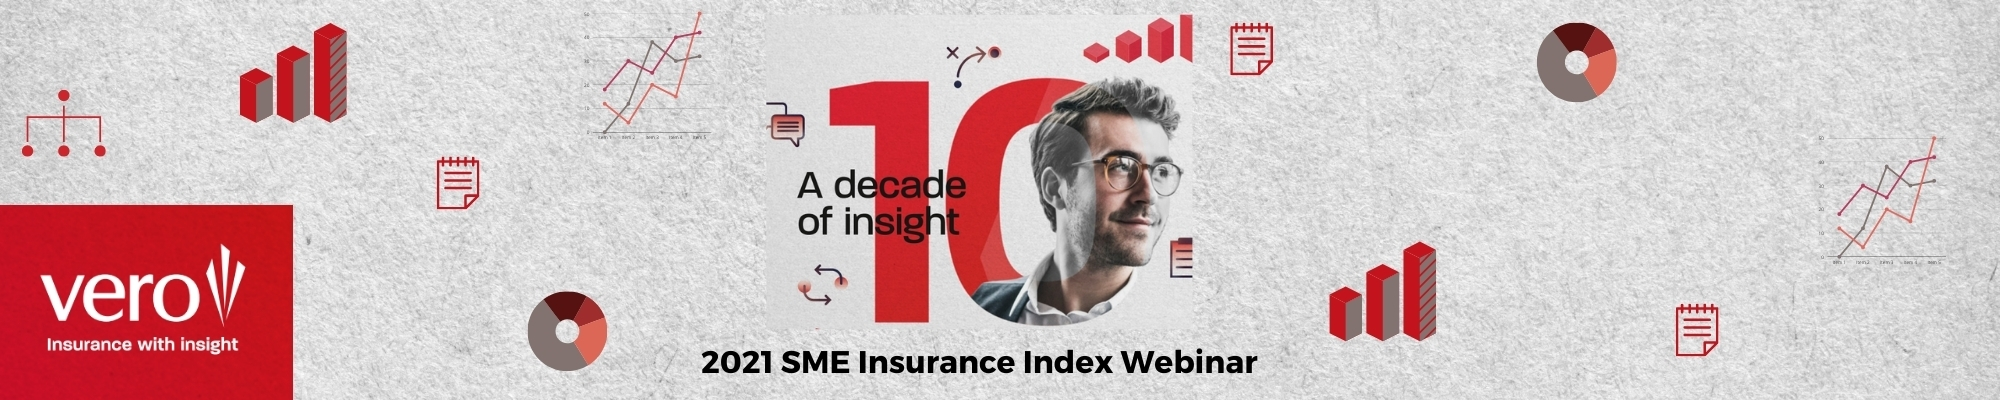 VERO SME Insurance Index 2021 - Recap